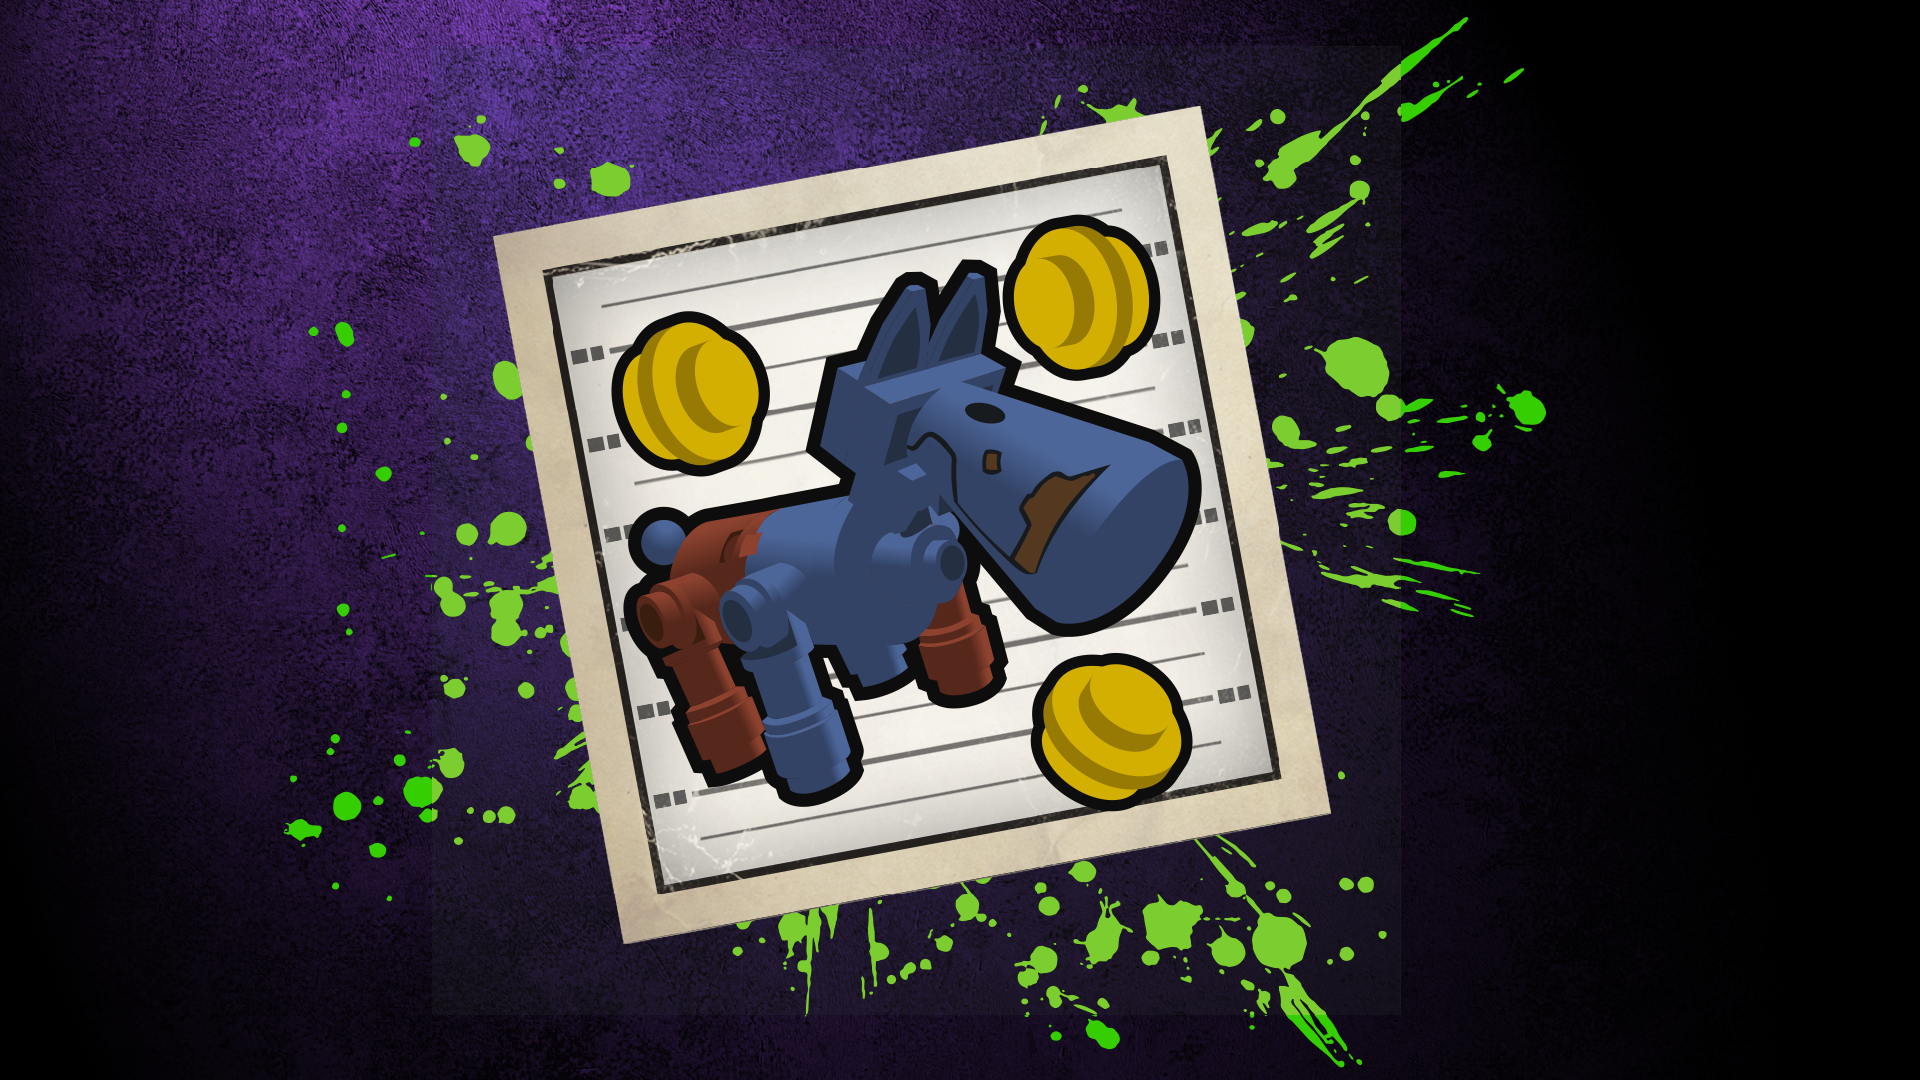 Icon for Become that which you fought against